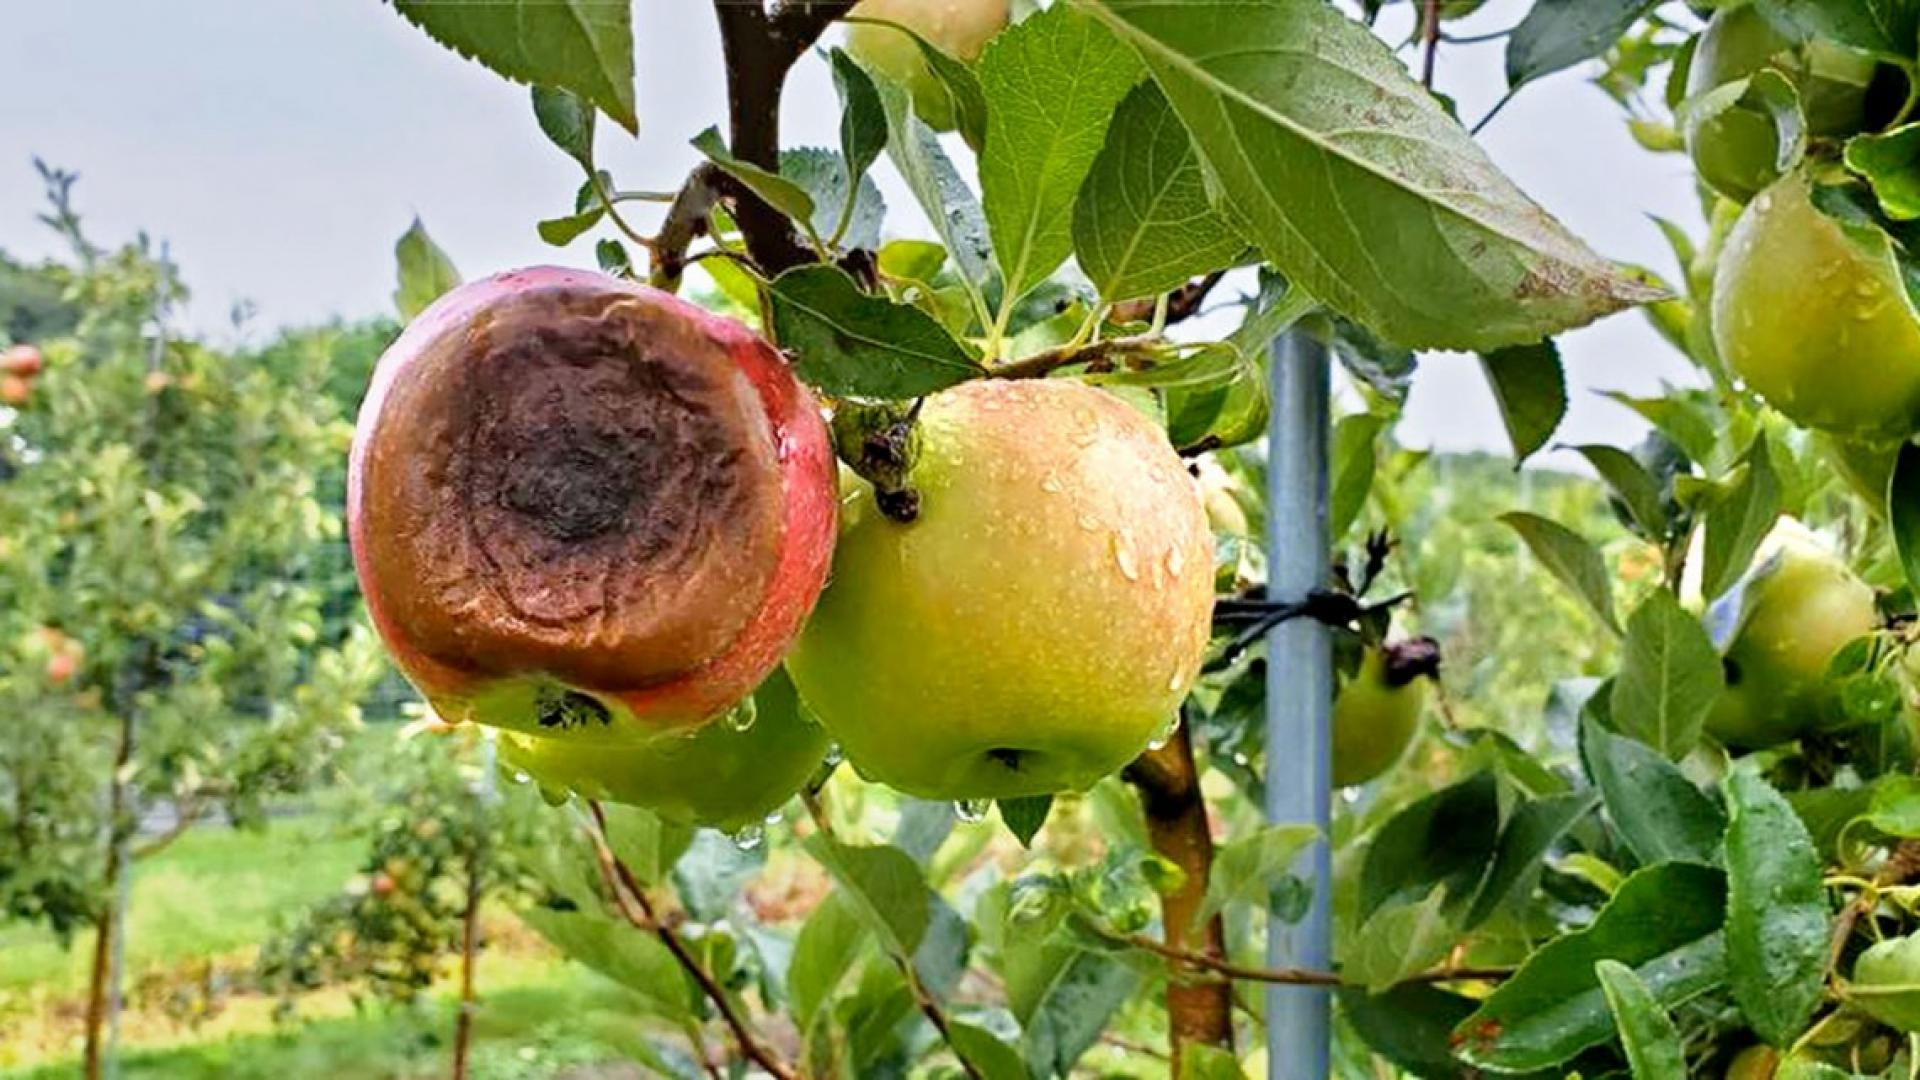 A rotten apple hanging from a tree